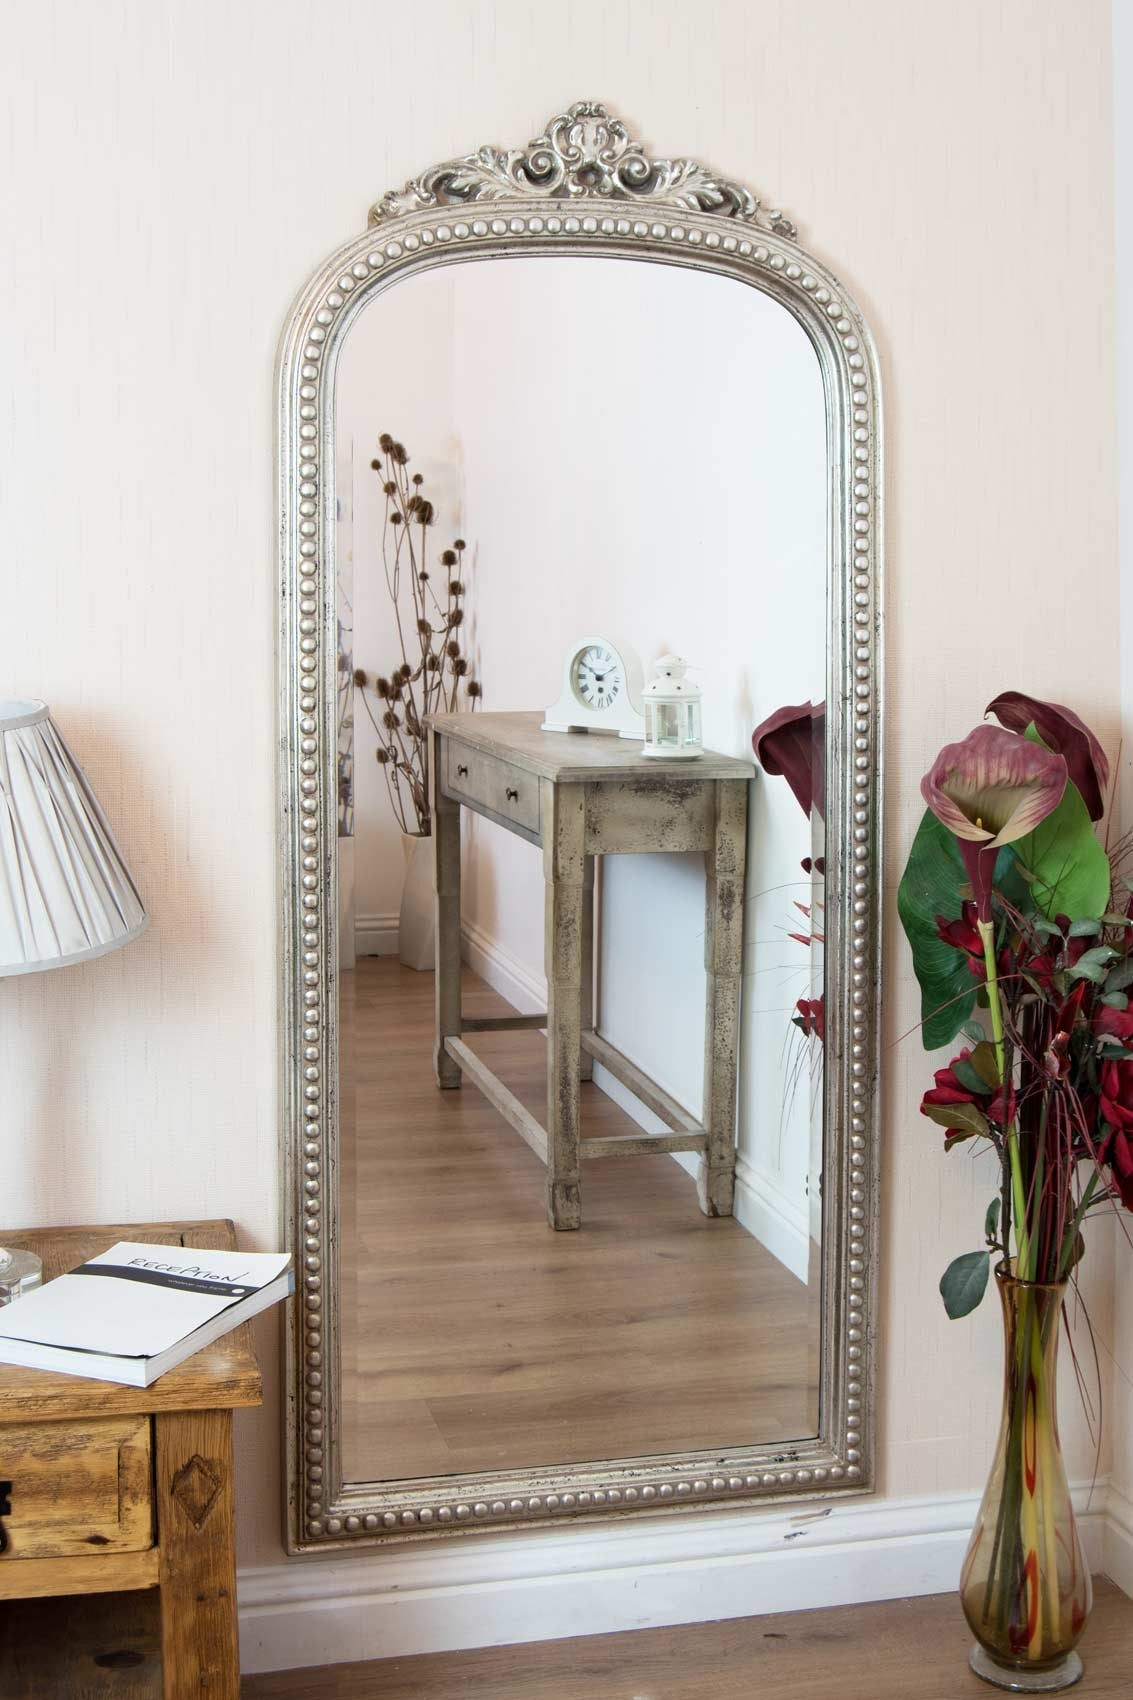 Decorative Mirror Rectangle 15 Collection Of Antique Style Mirrors Wall Mirror Ideas